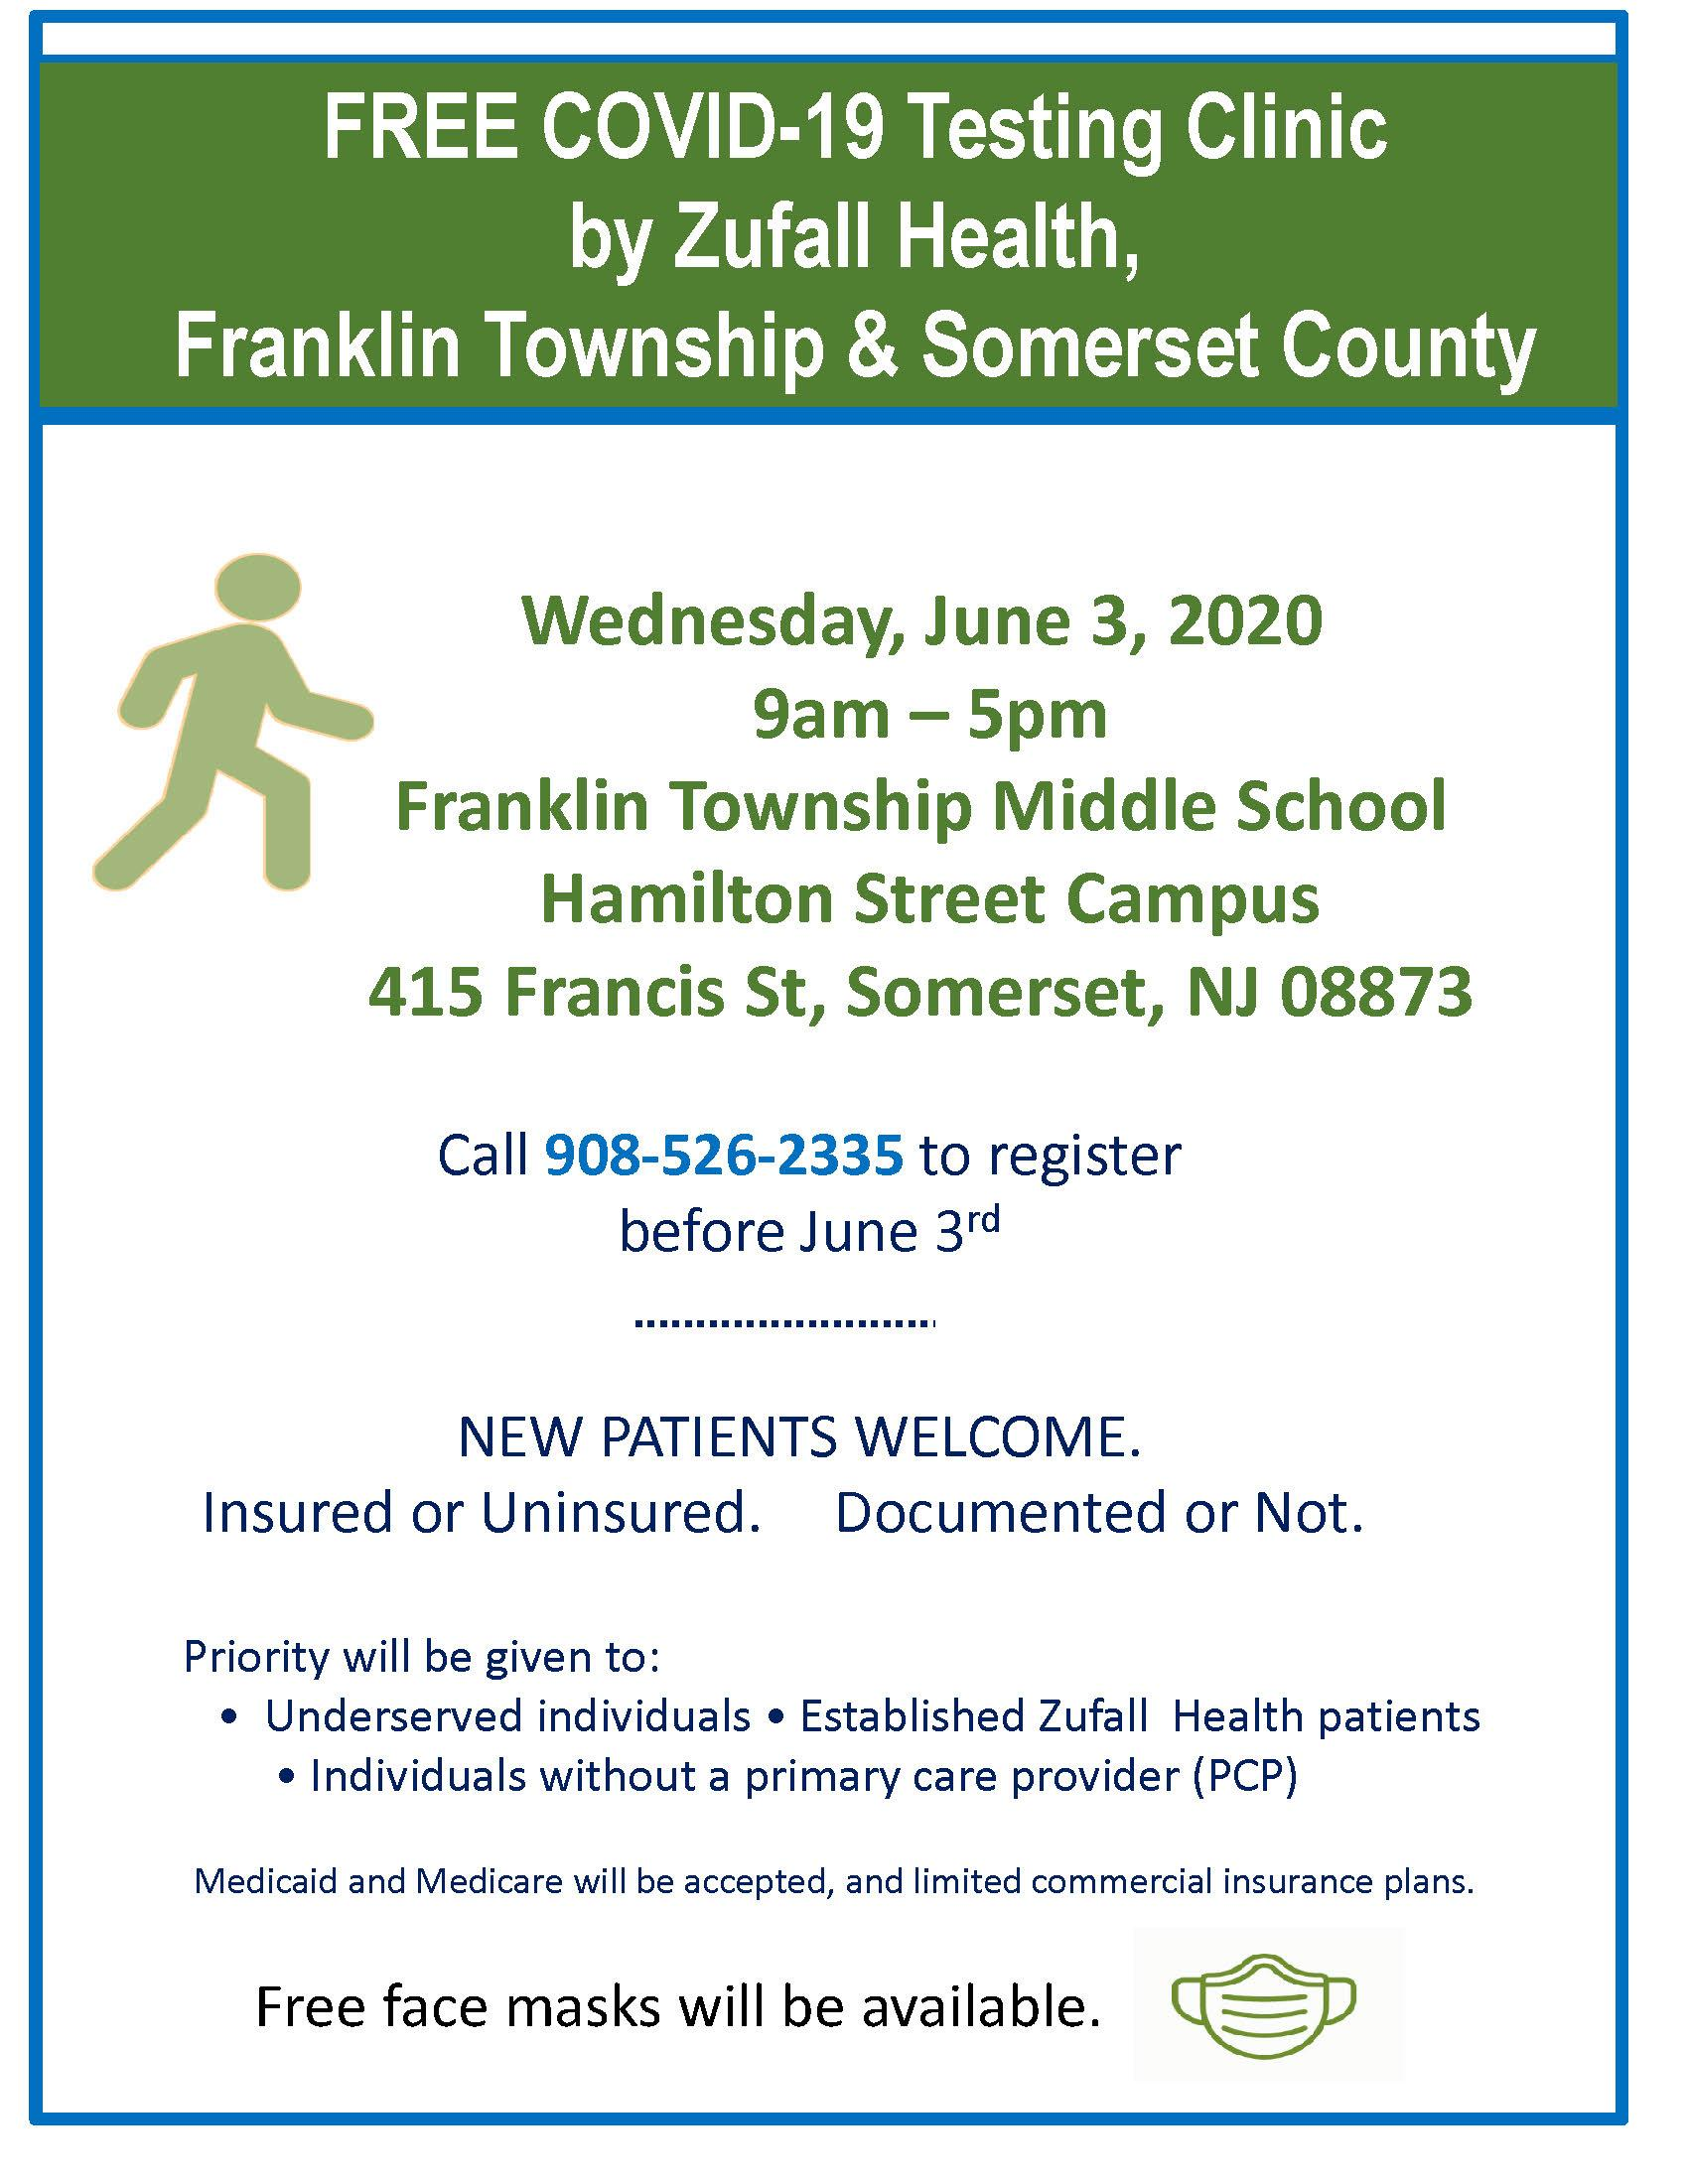 Flyer for Free COVID-19 Testing Clinic in Franklin Township, NJ